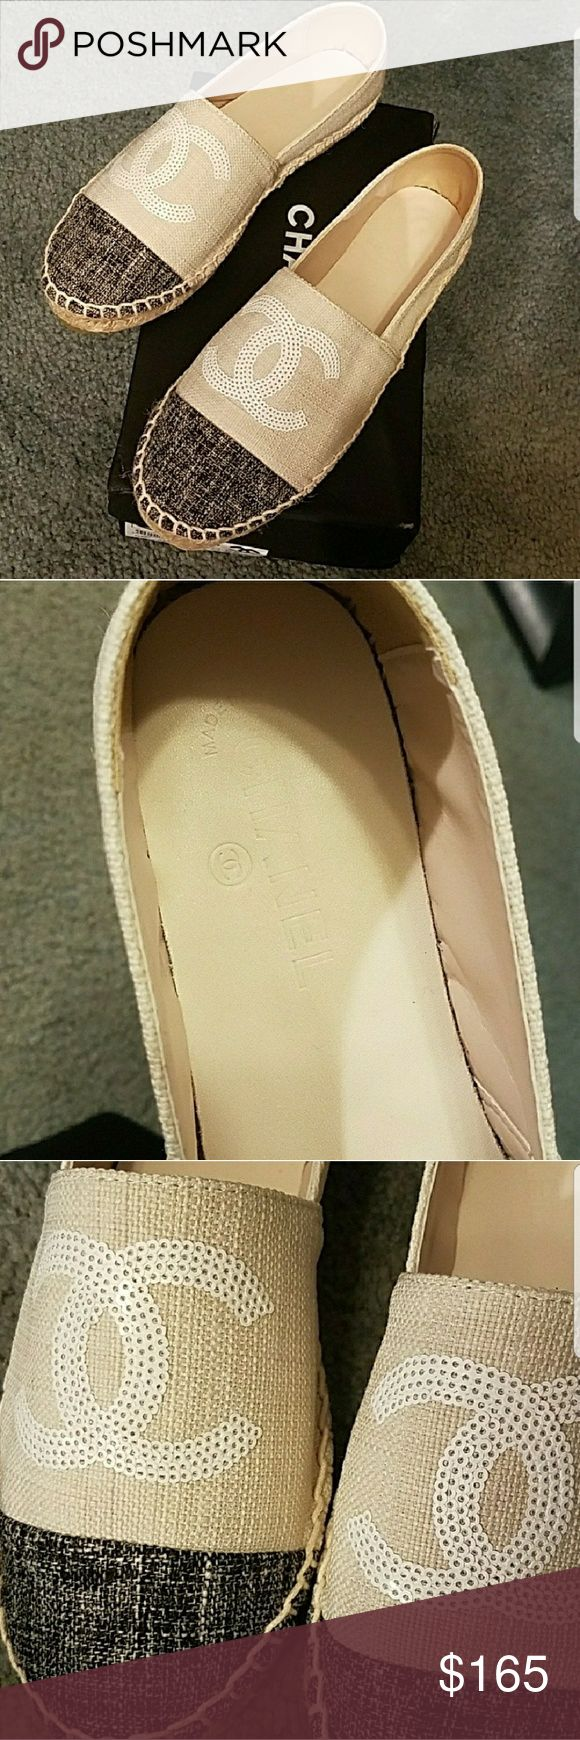 NEW beige sequin toe cap espadrille flats size 7.5 Shoes are brand new. Price reflects quality. All sales final. No returns. Let me know if you want the box that comes with, its a bit squished. Shoes